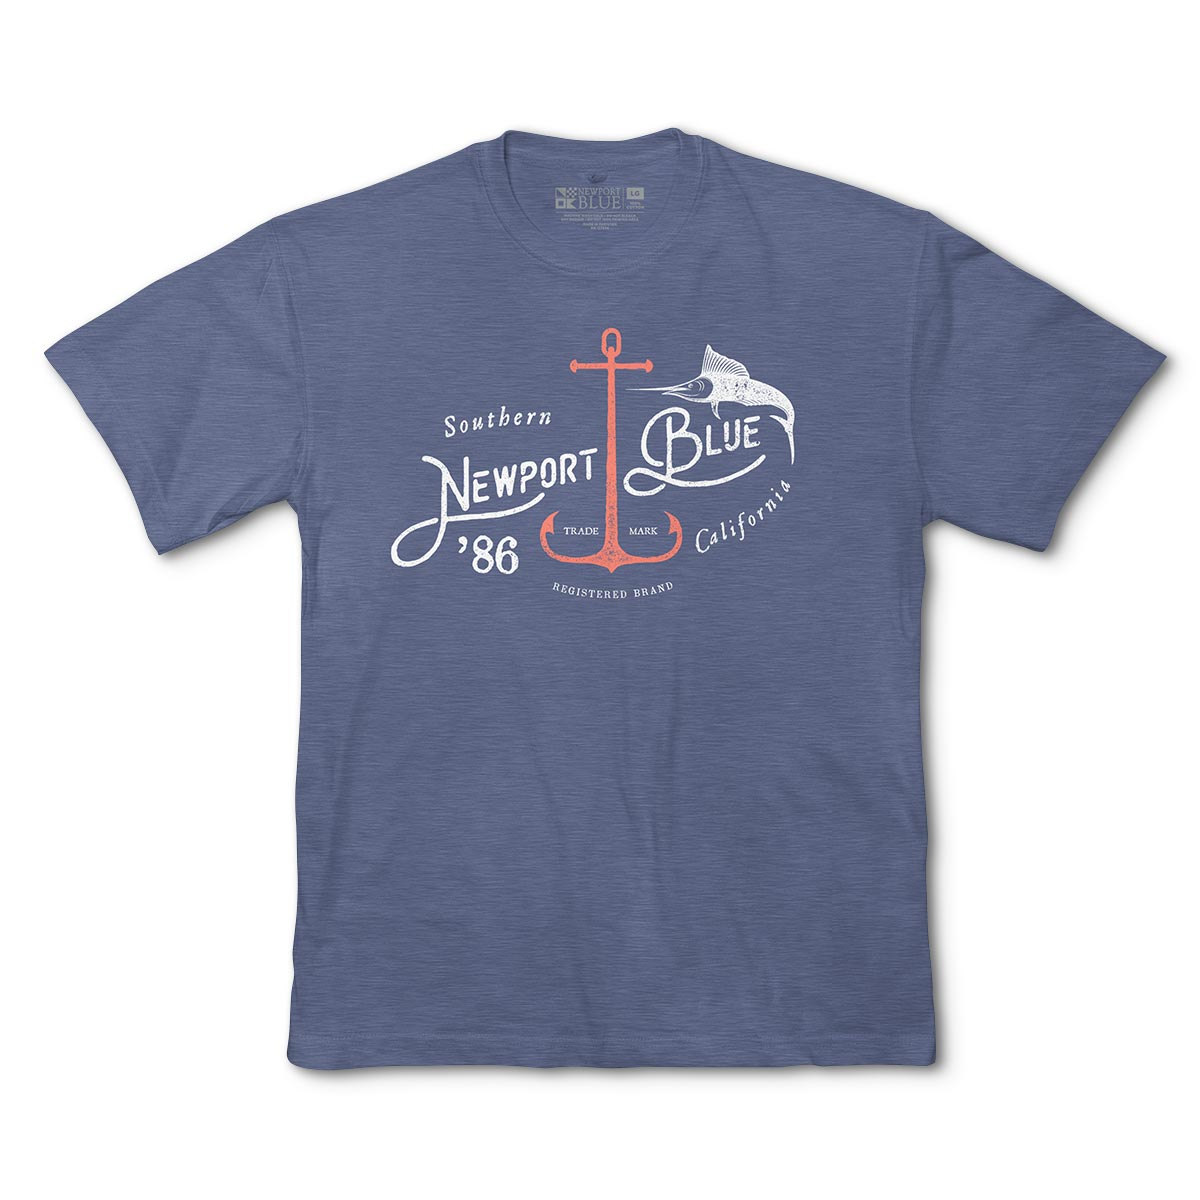 Newport Blue - Graphic Tee | Port So Cal - Navy Heather